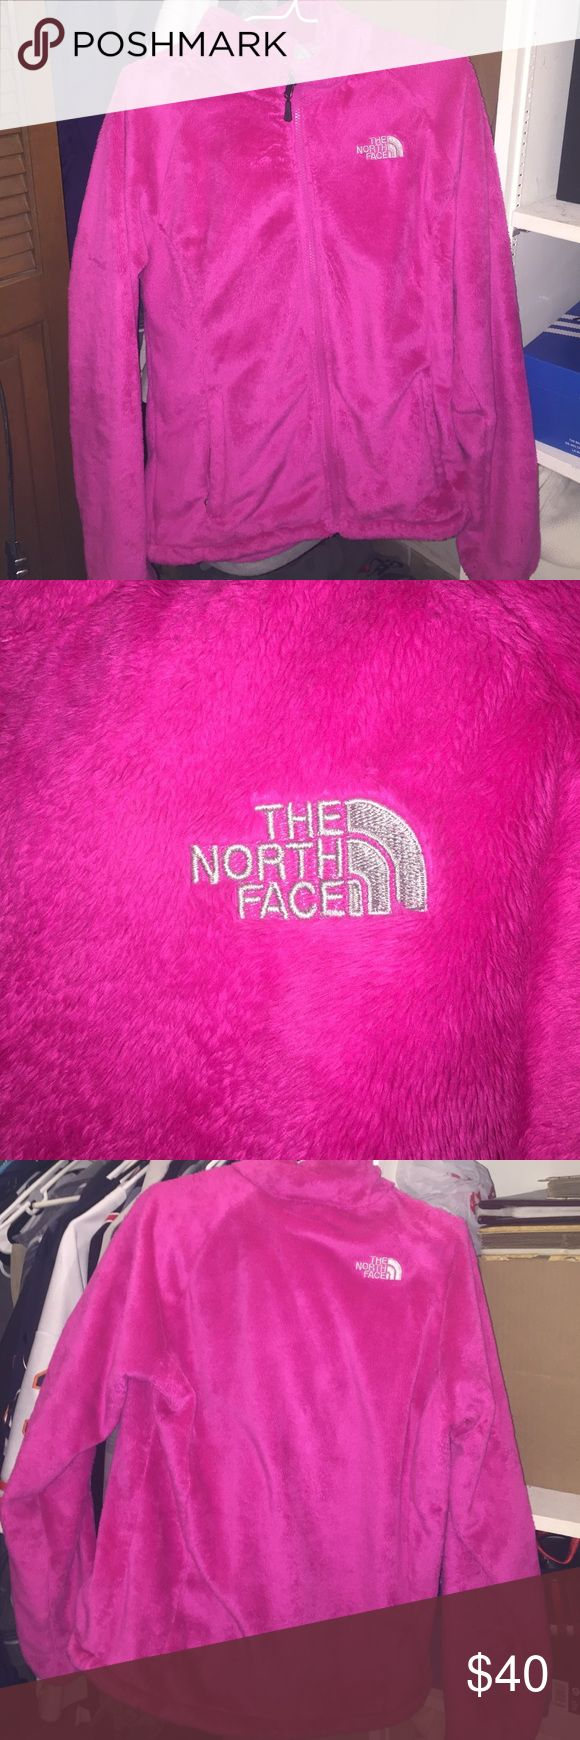 "FINAL PRICE DROP!! North Face ""fuzzy"" zip up Bright pink North Face ""fuzzy"" zip up. Women's large. Only worn a few times. No stains or tears. Non negotiable no lower than $35.00 please North Face Jackets & Coats"